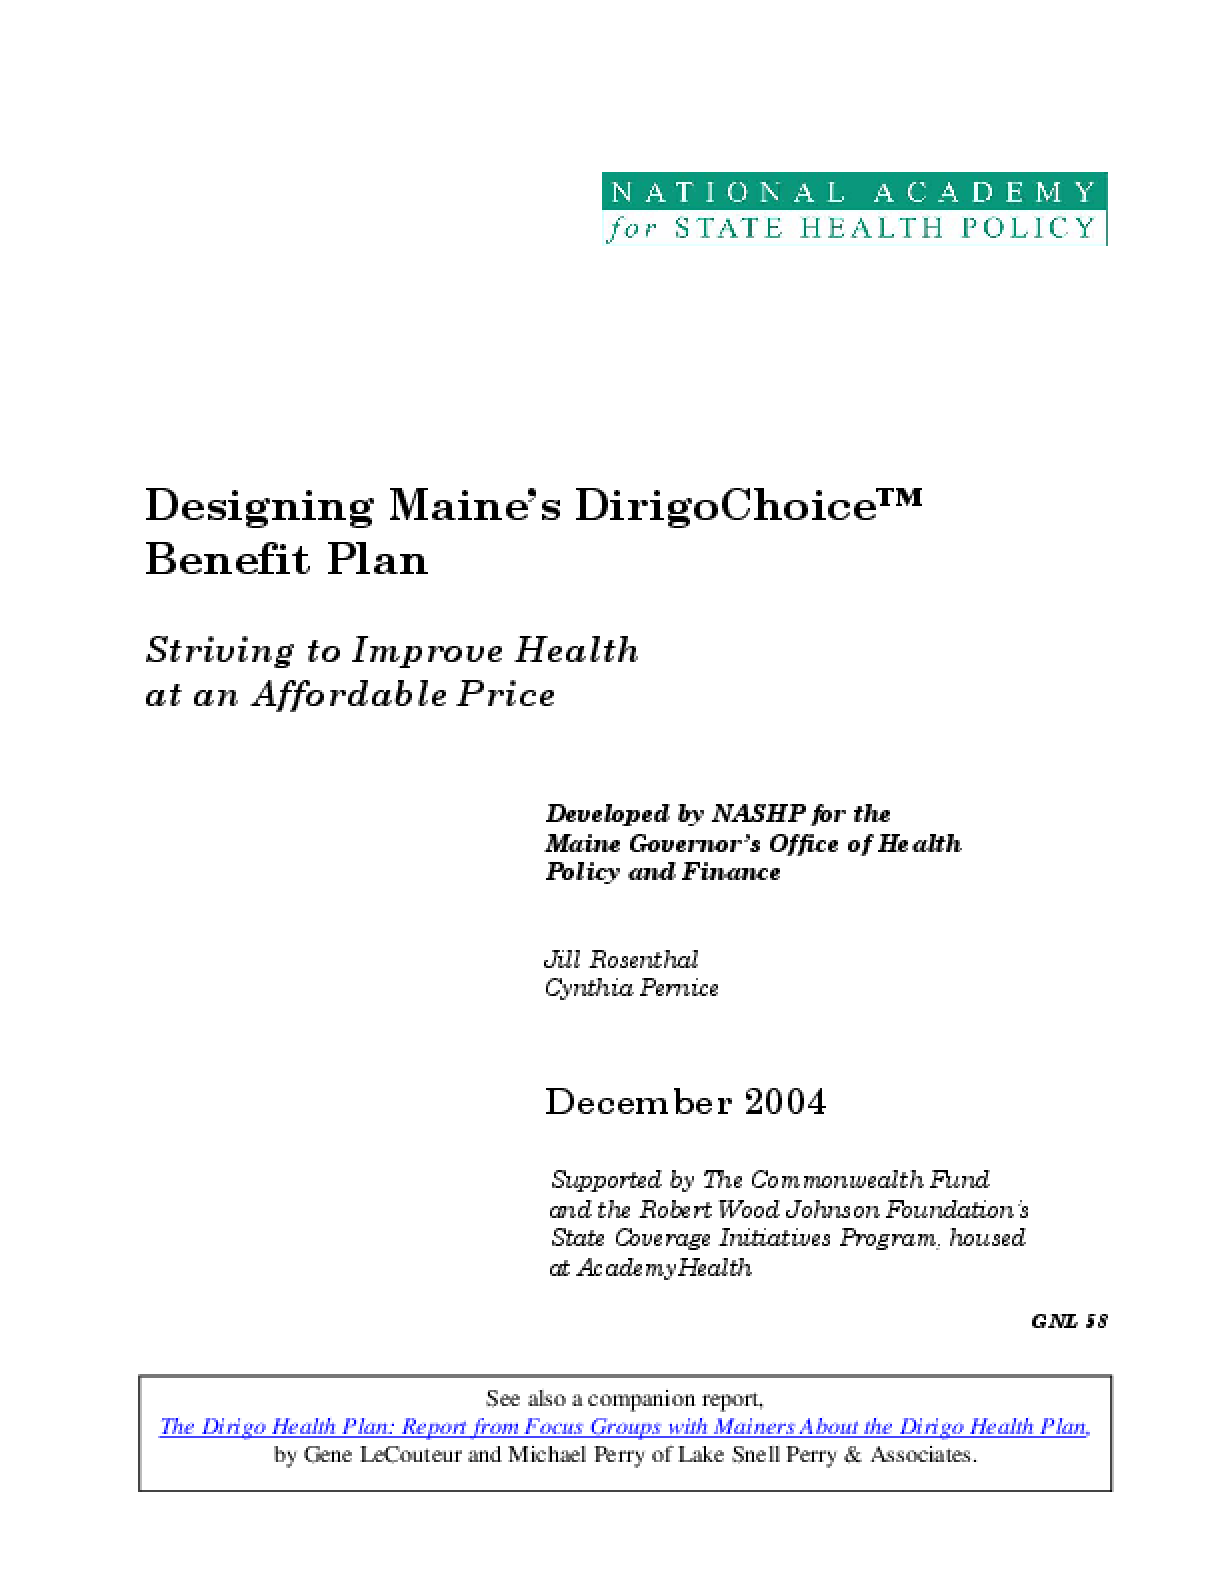 Designing Maine's DirigoChoice Benefit Plan